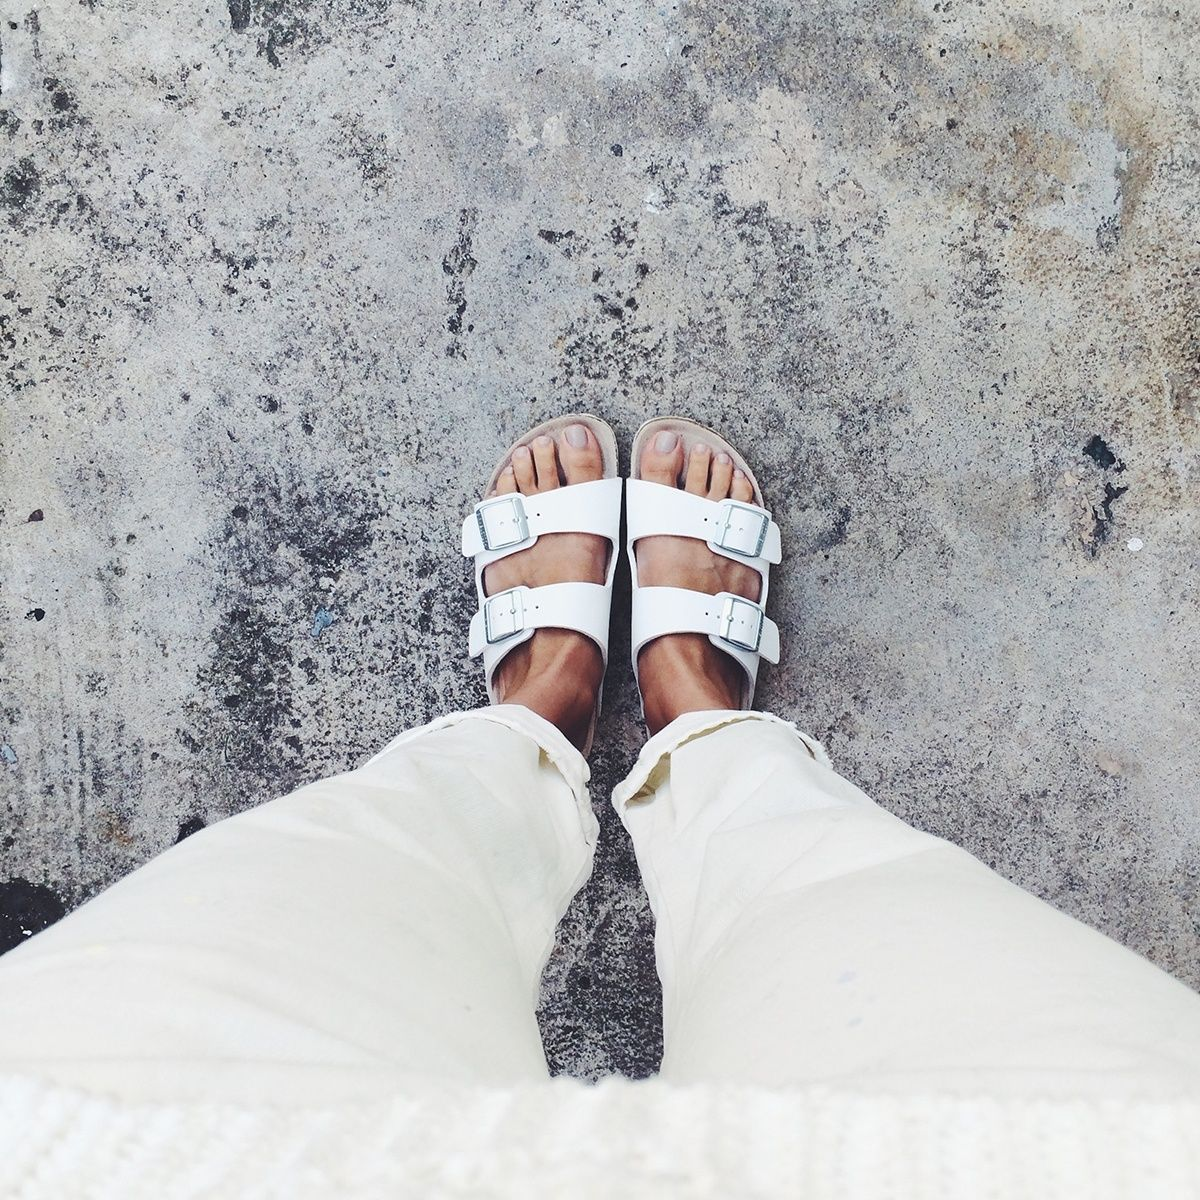 View From the Topp's 10 favorite flats for spring. Vogue.com